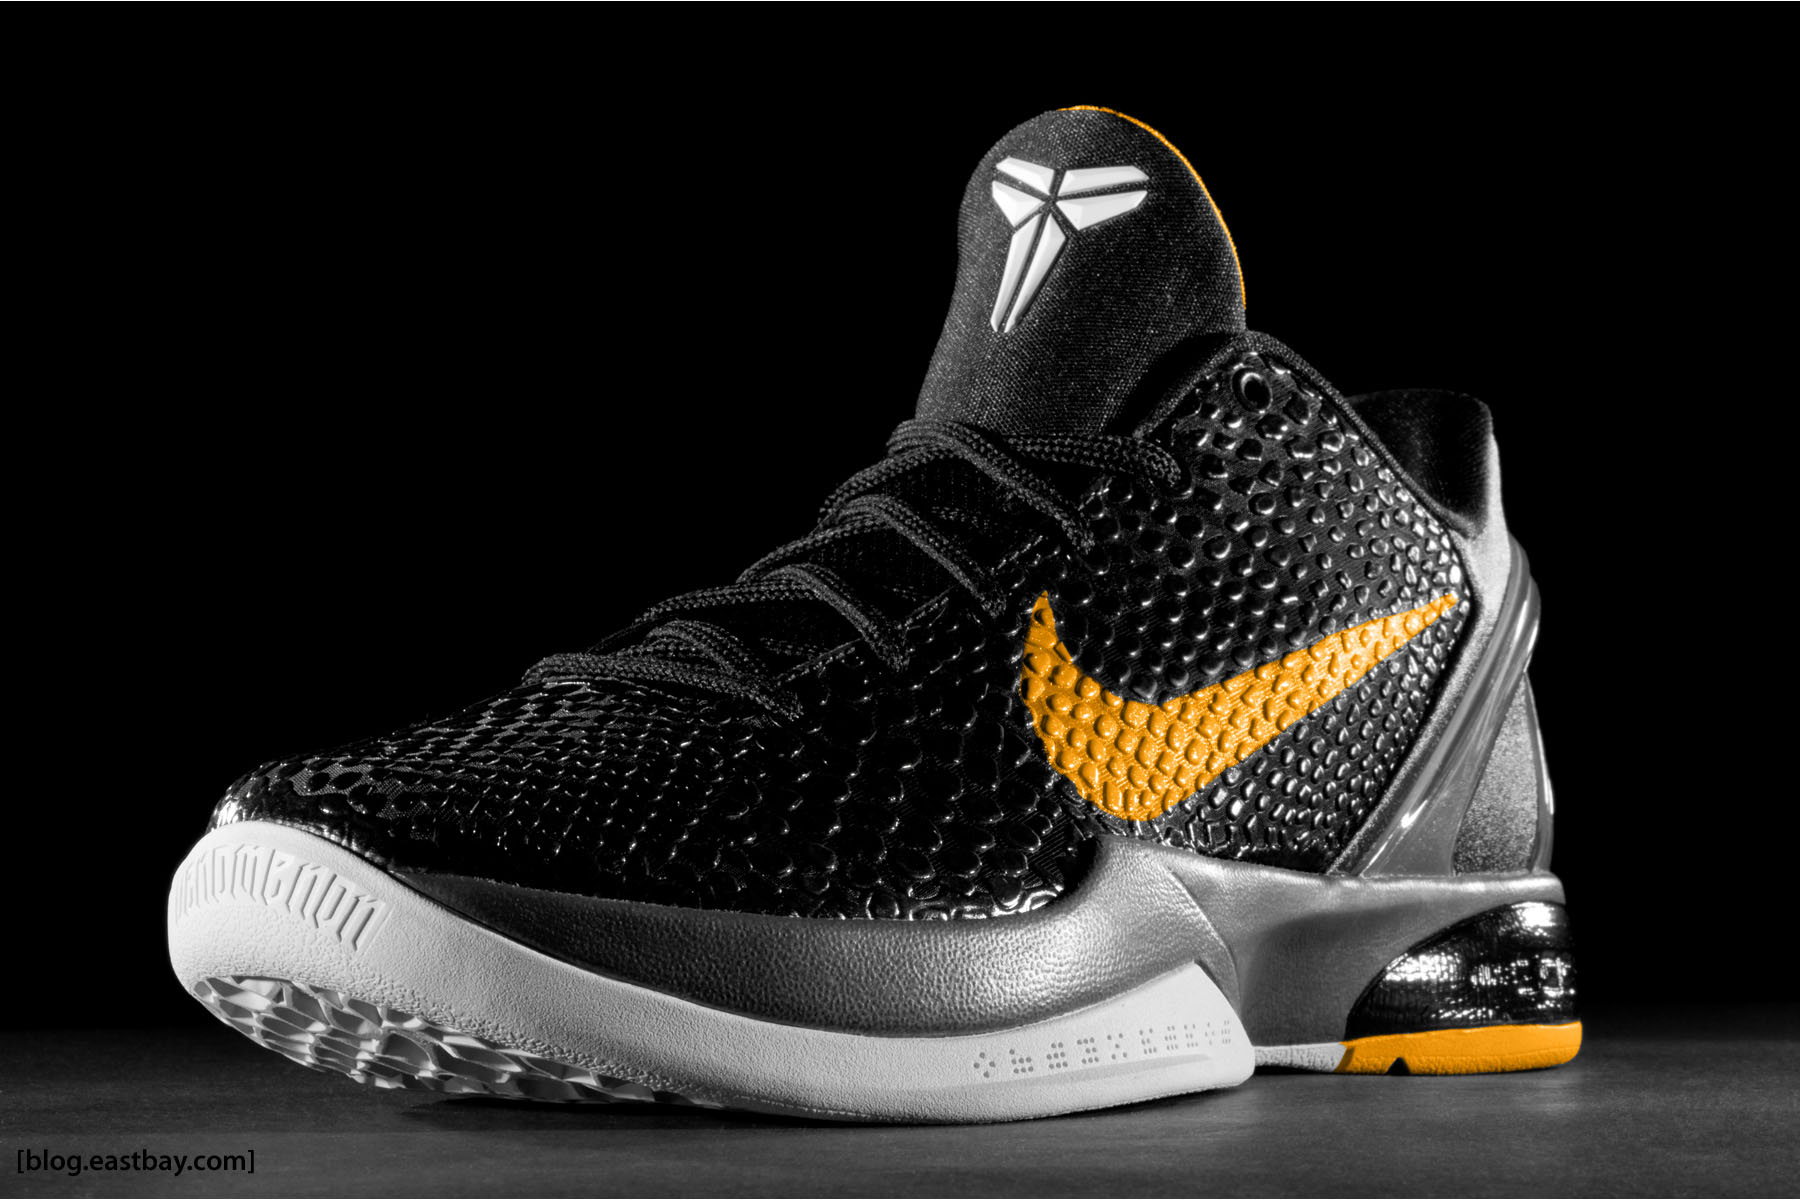 Wallpaper: Nike Zoom Kobe VI Del Sol